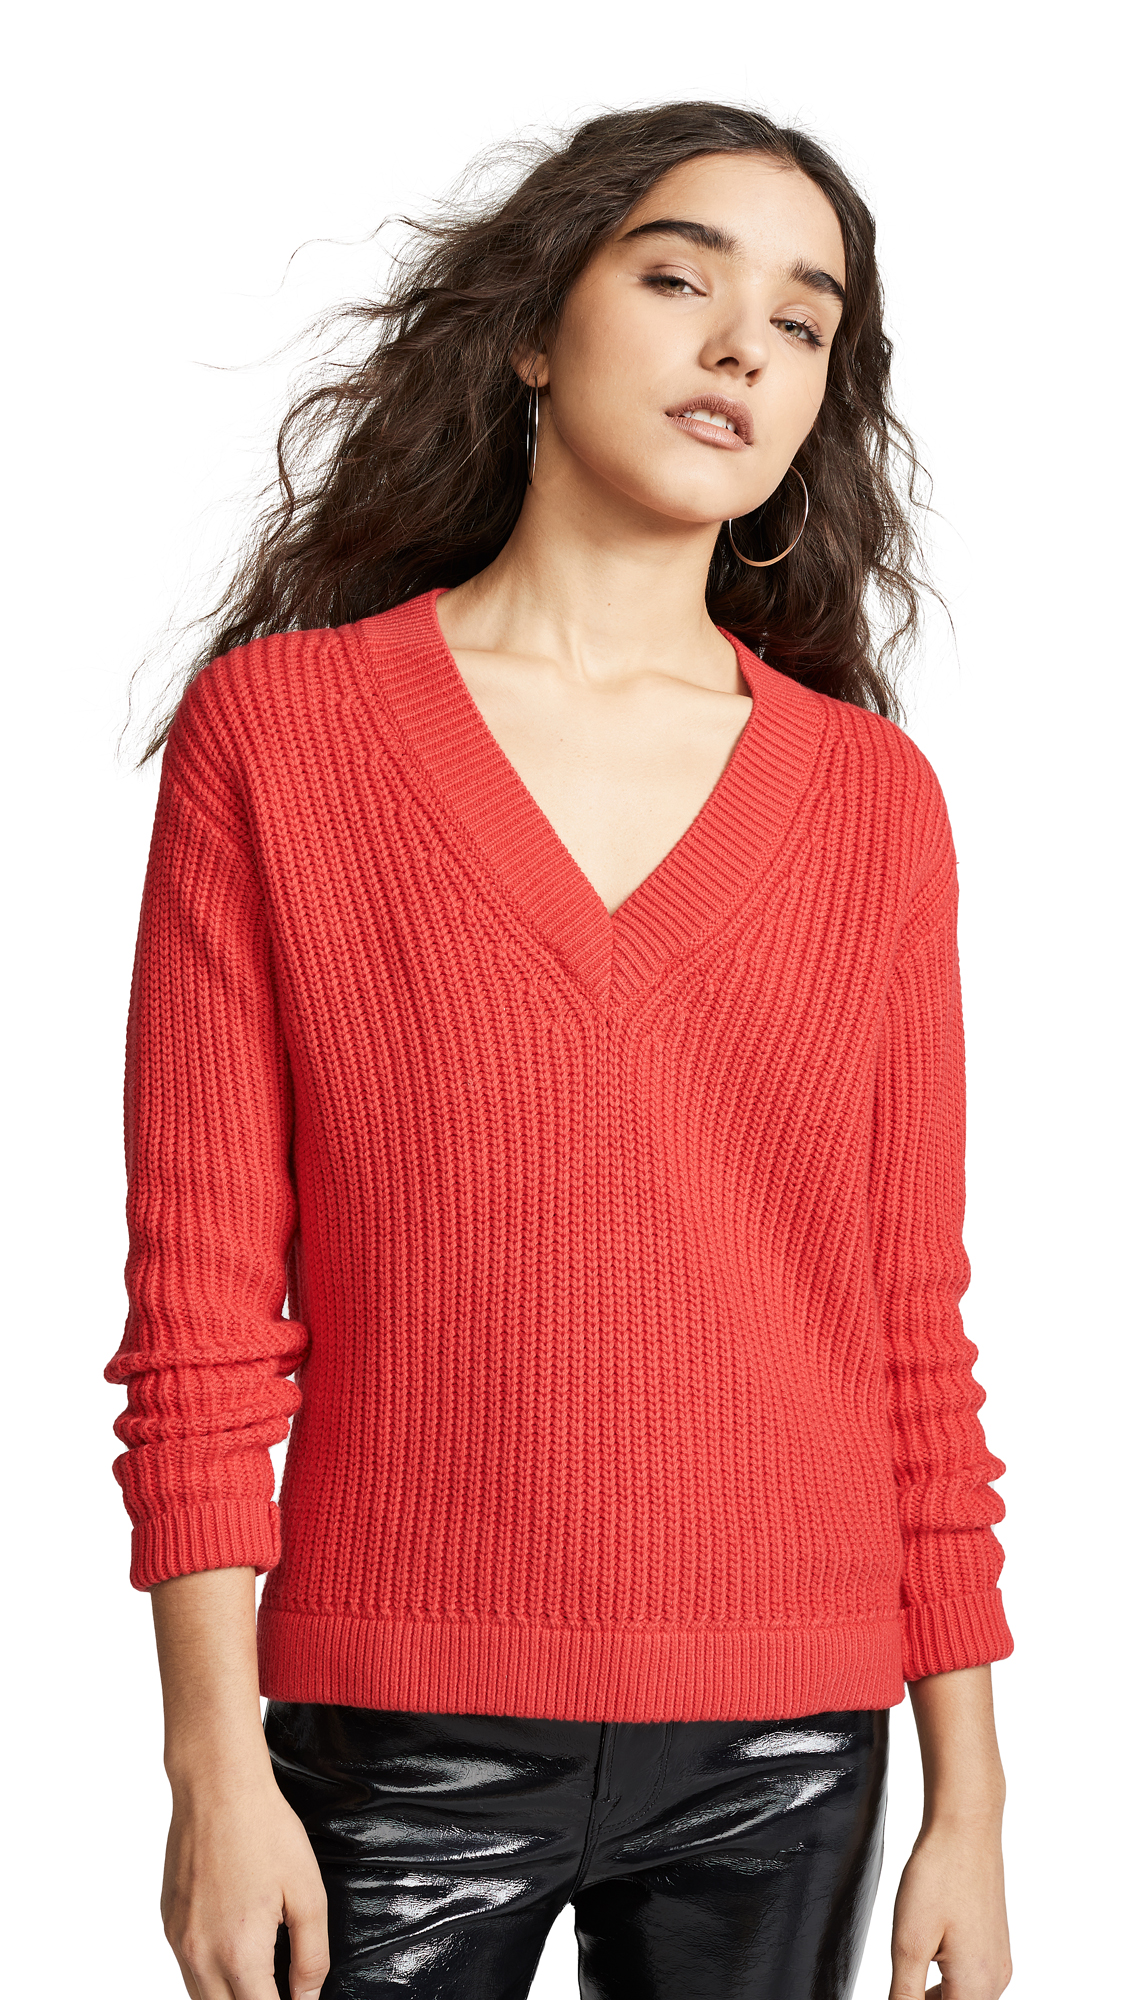 BOP BASICS Deep V Sweater in Tomato